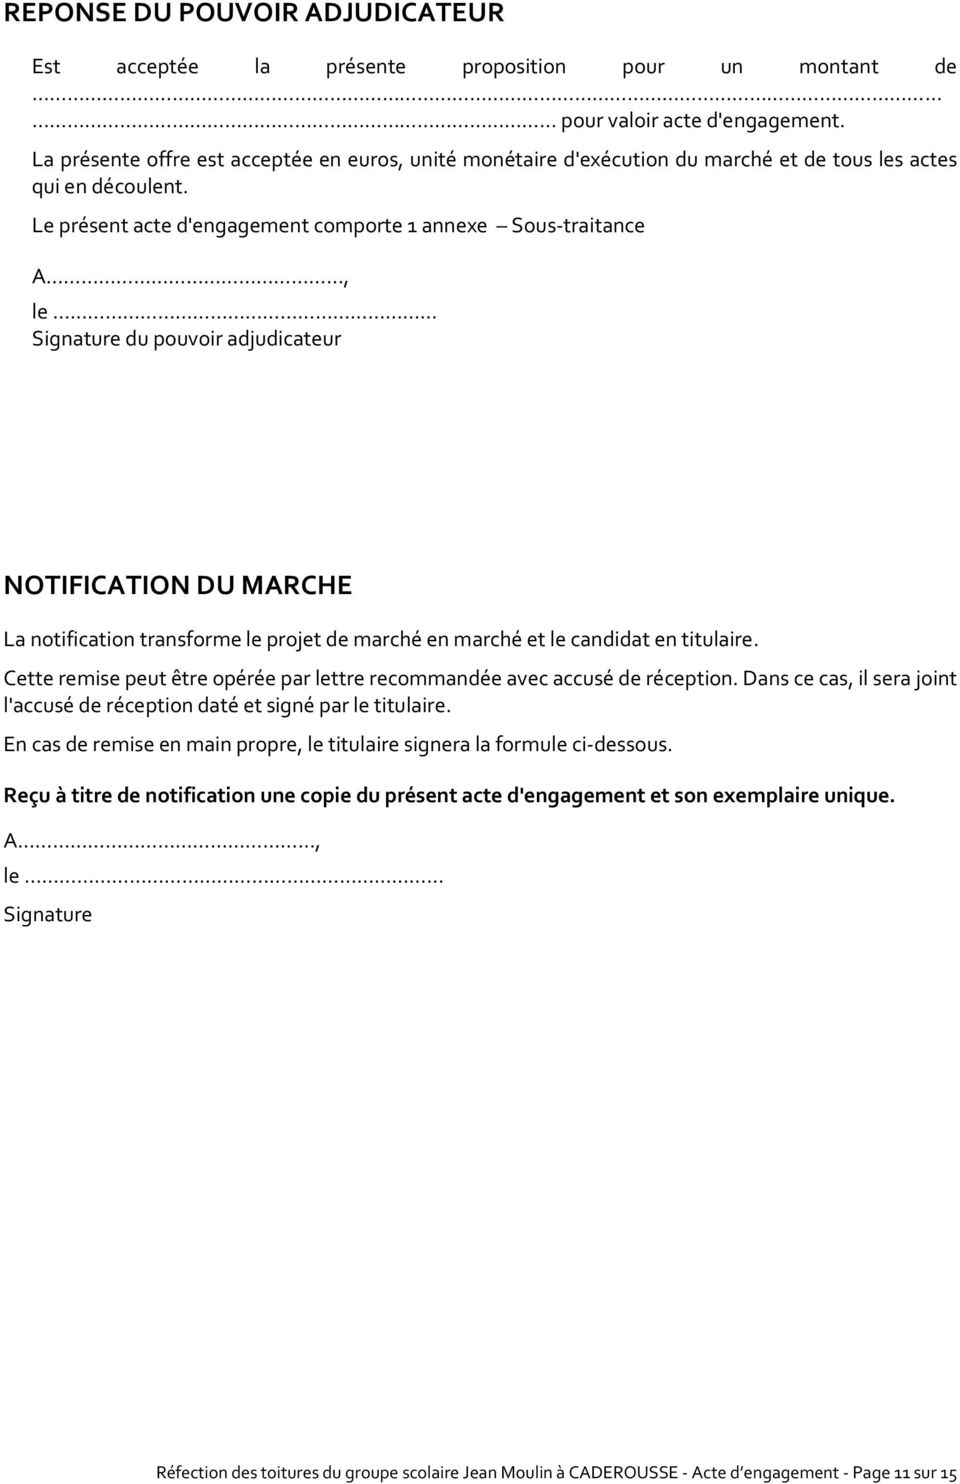 Le présent acte d'engagement comporte 1 annexe Sous-traitance A, le Signature du pouvoir adjudicateur NOTIFICATION DU MARCHE La notification transforme le projet de marché en marché et le candidat en